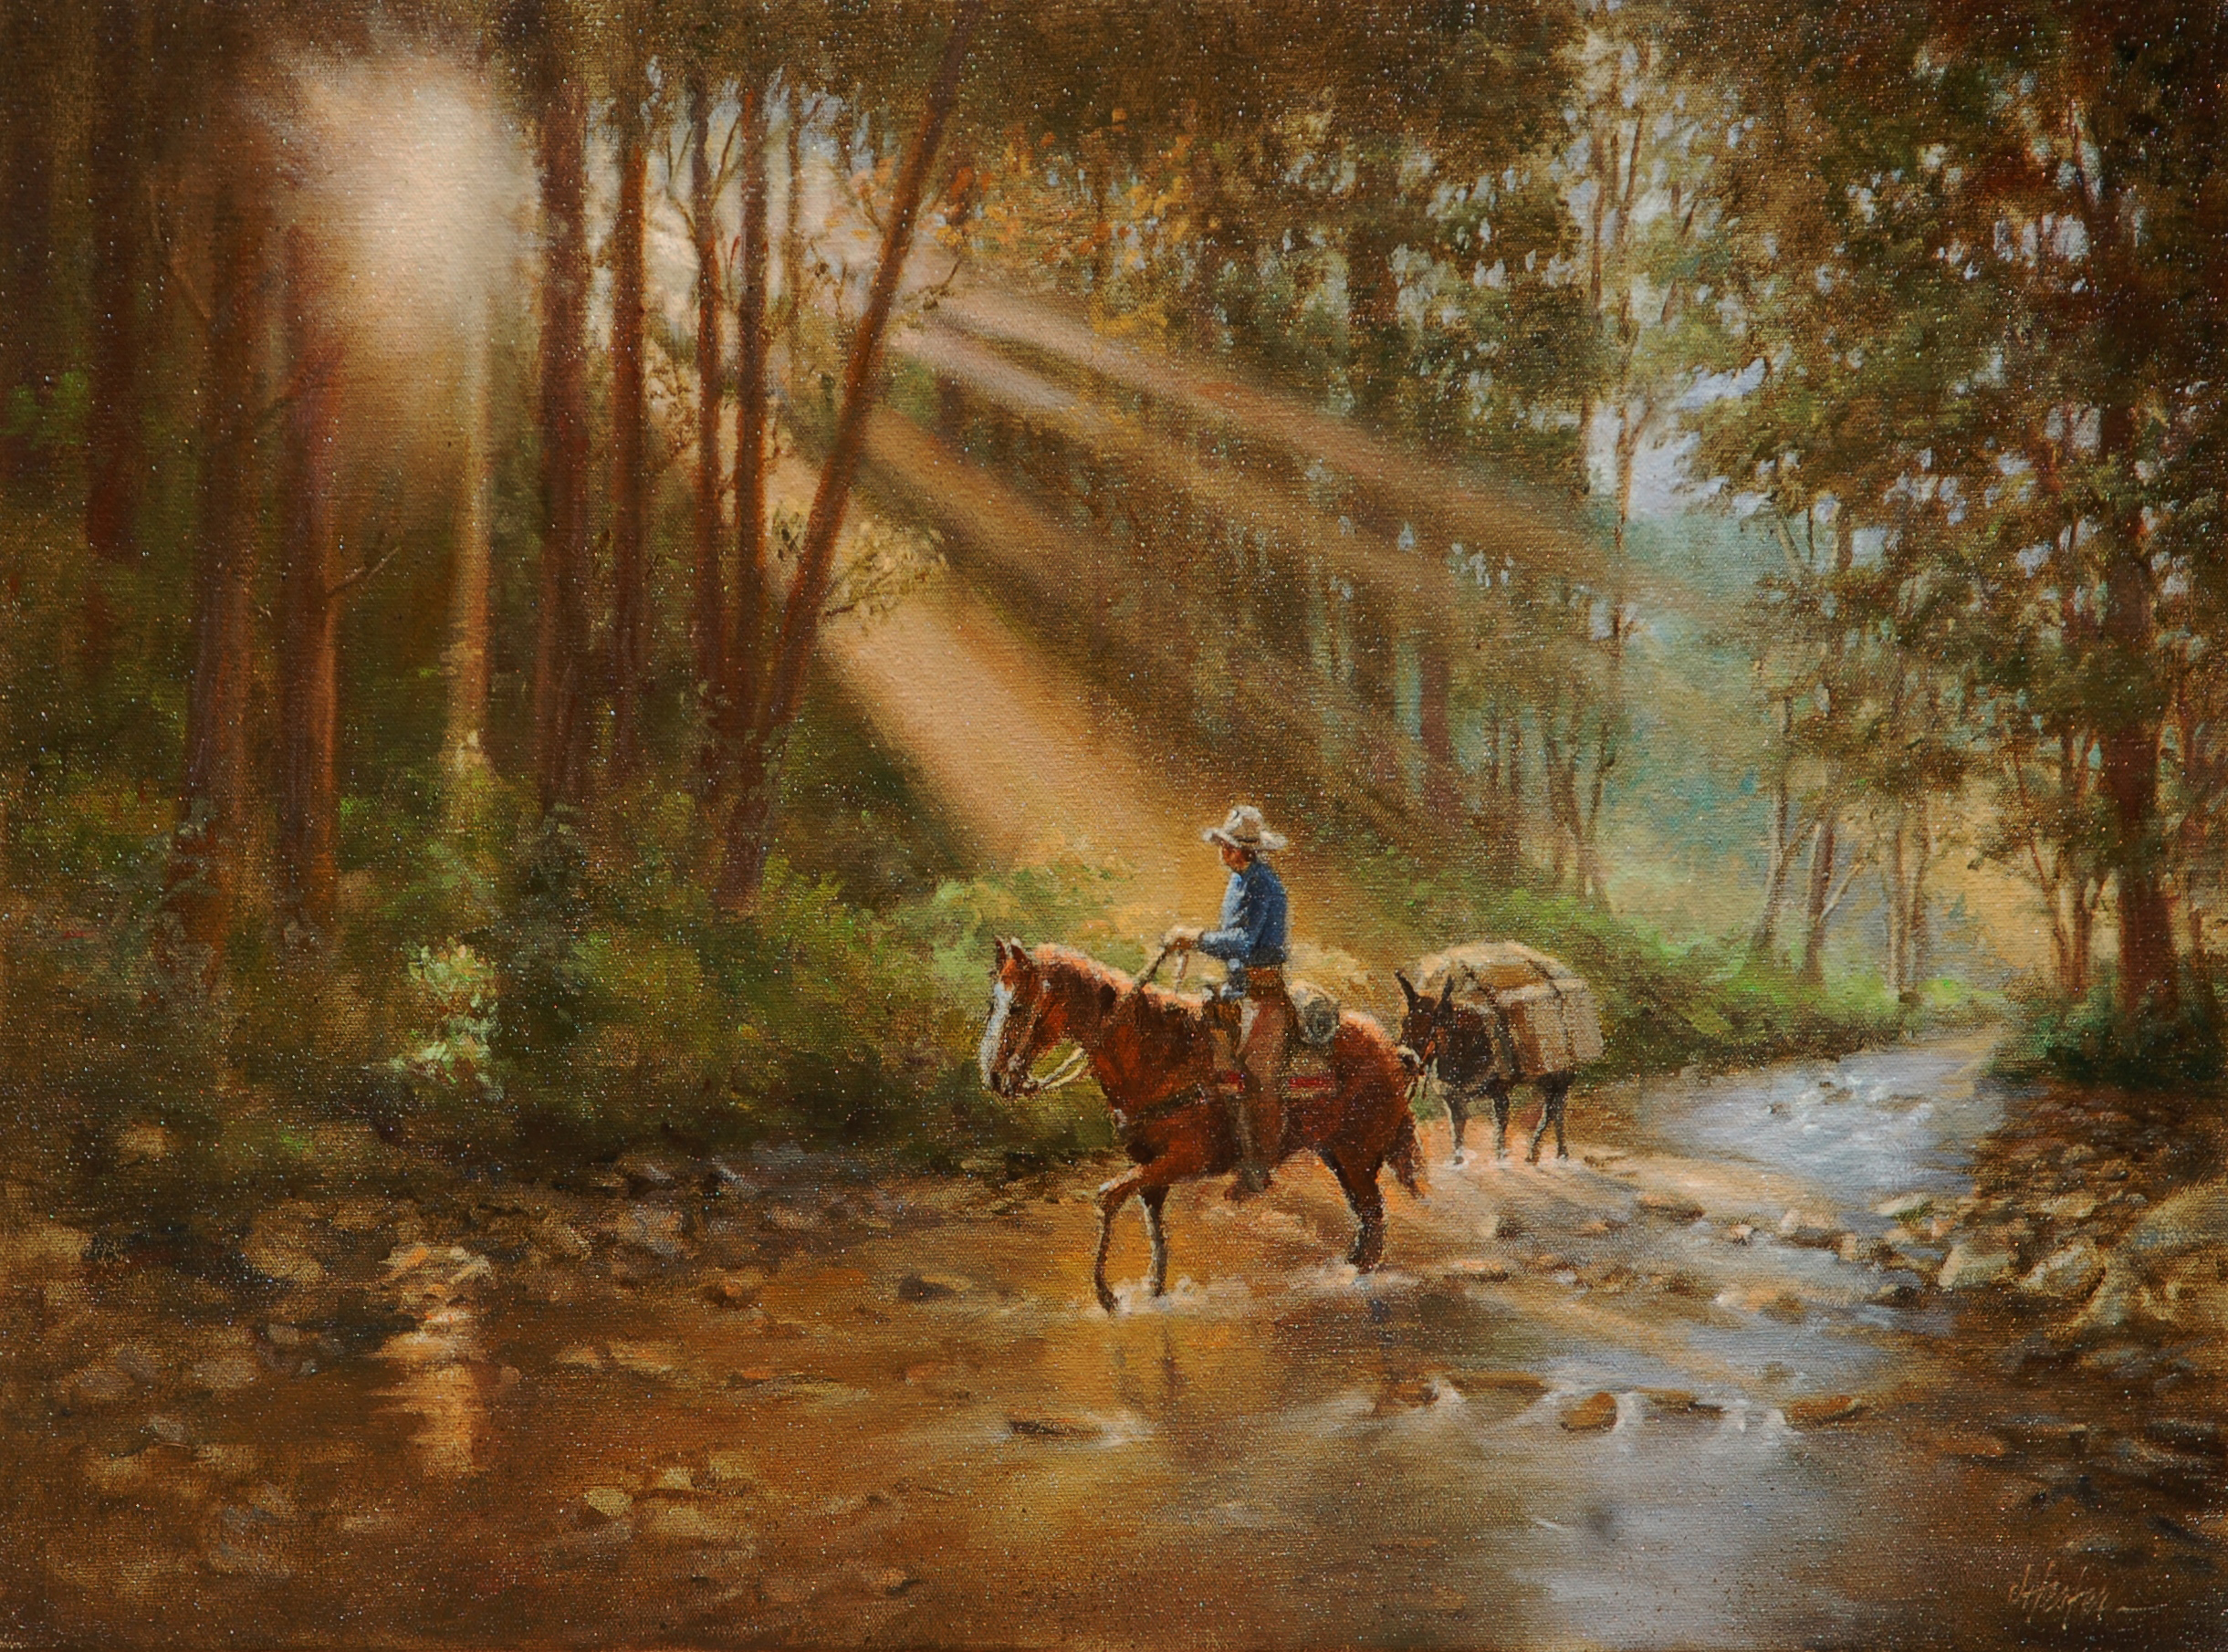 """New Day Dawning"" Original Painting by J. Hester Original Oil Painting - 18"" x 24"""